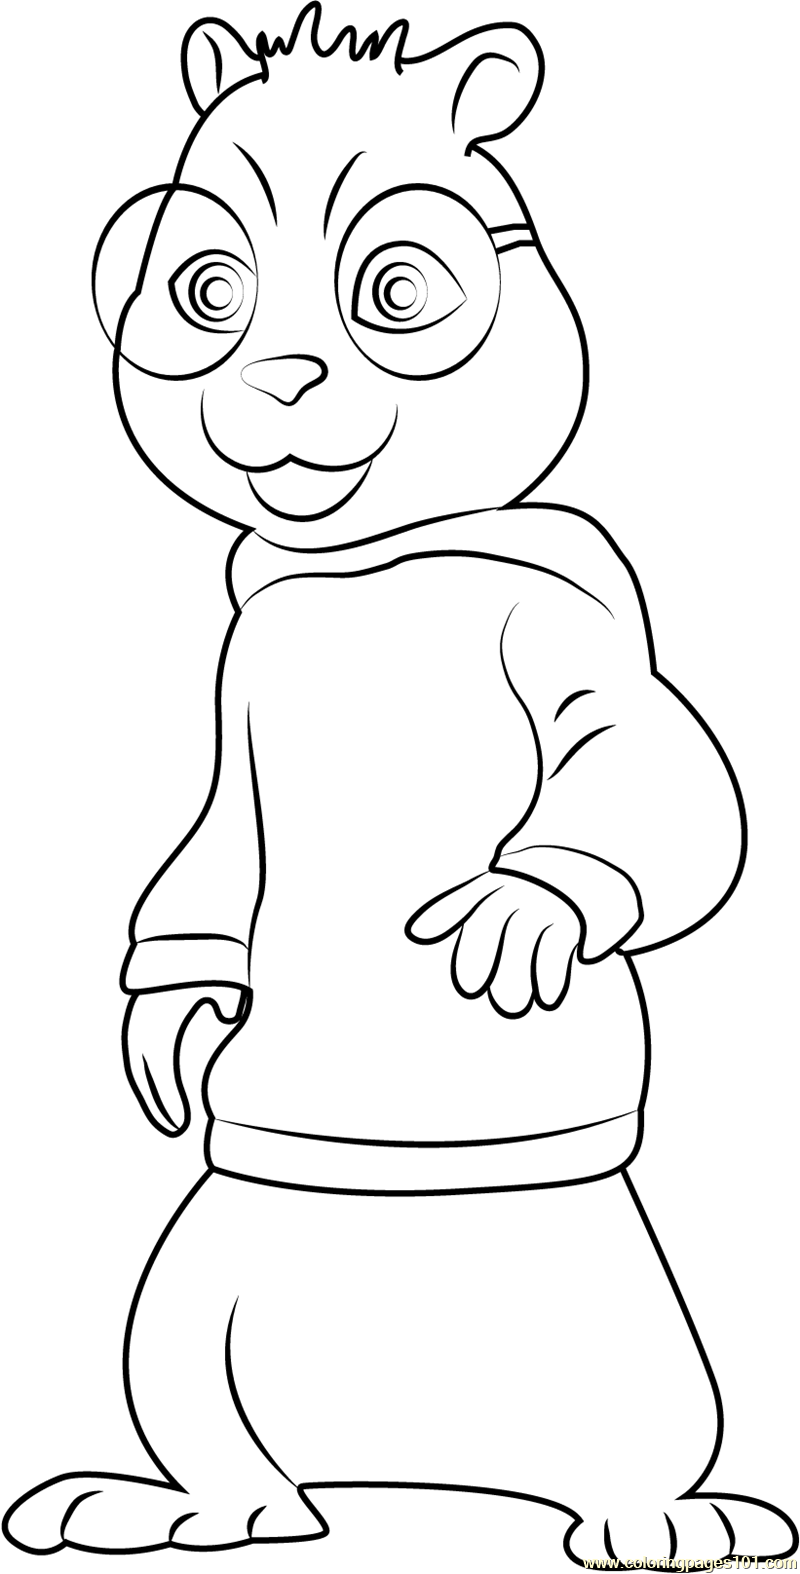 coloring pages of simon - photo#8